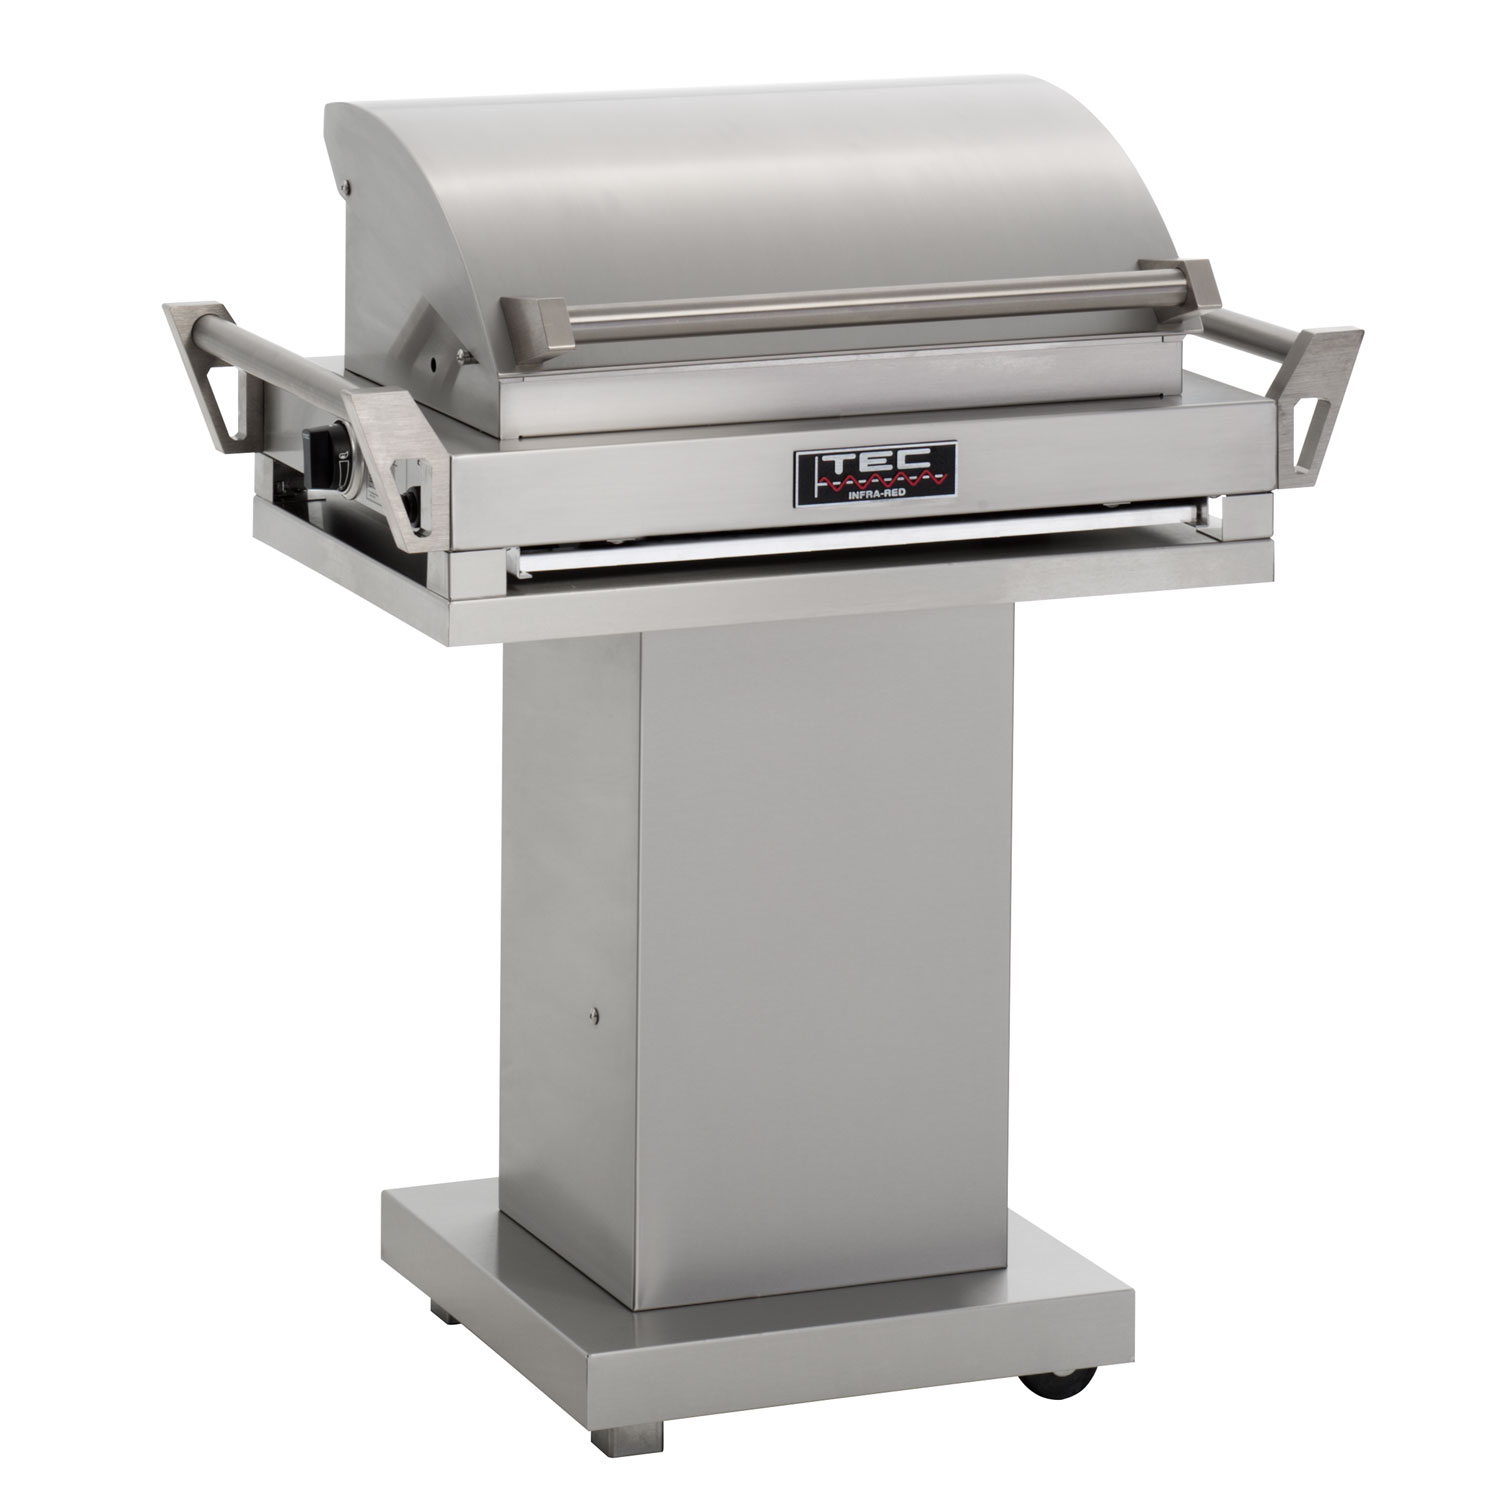 Tec g sport fr natural gas grill on stainless steel